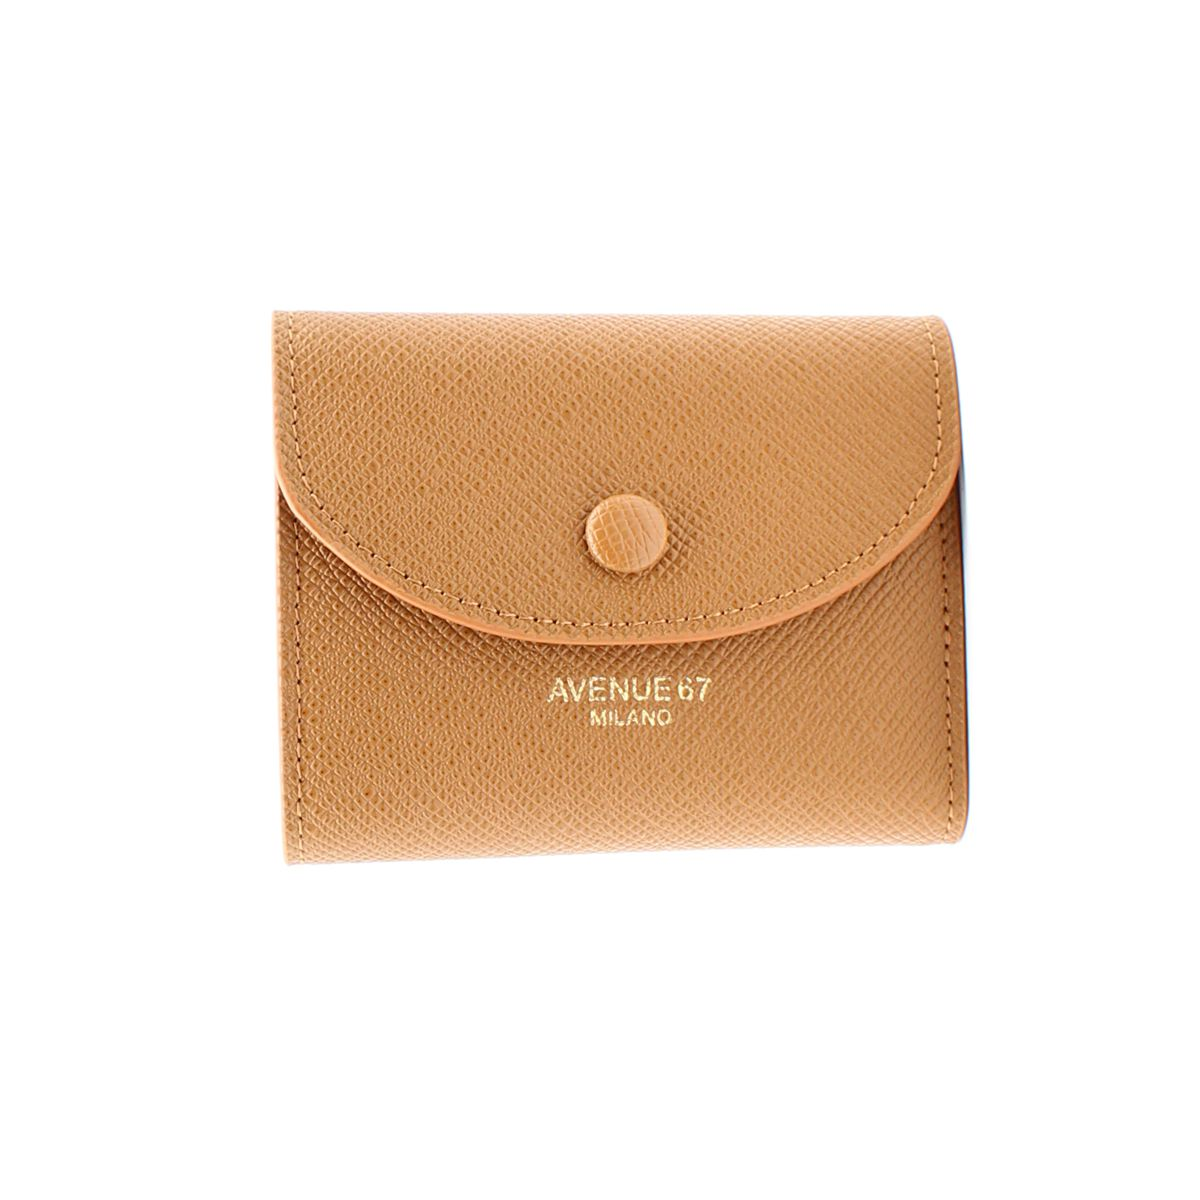 Purse Leather Avenue 67